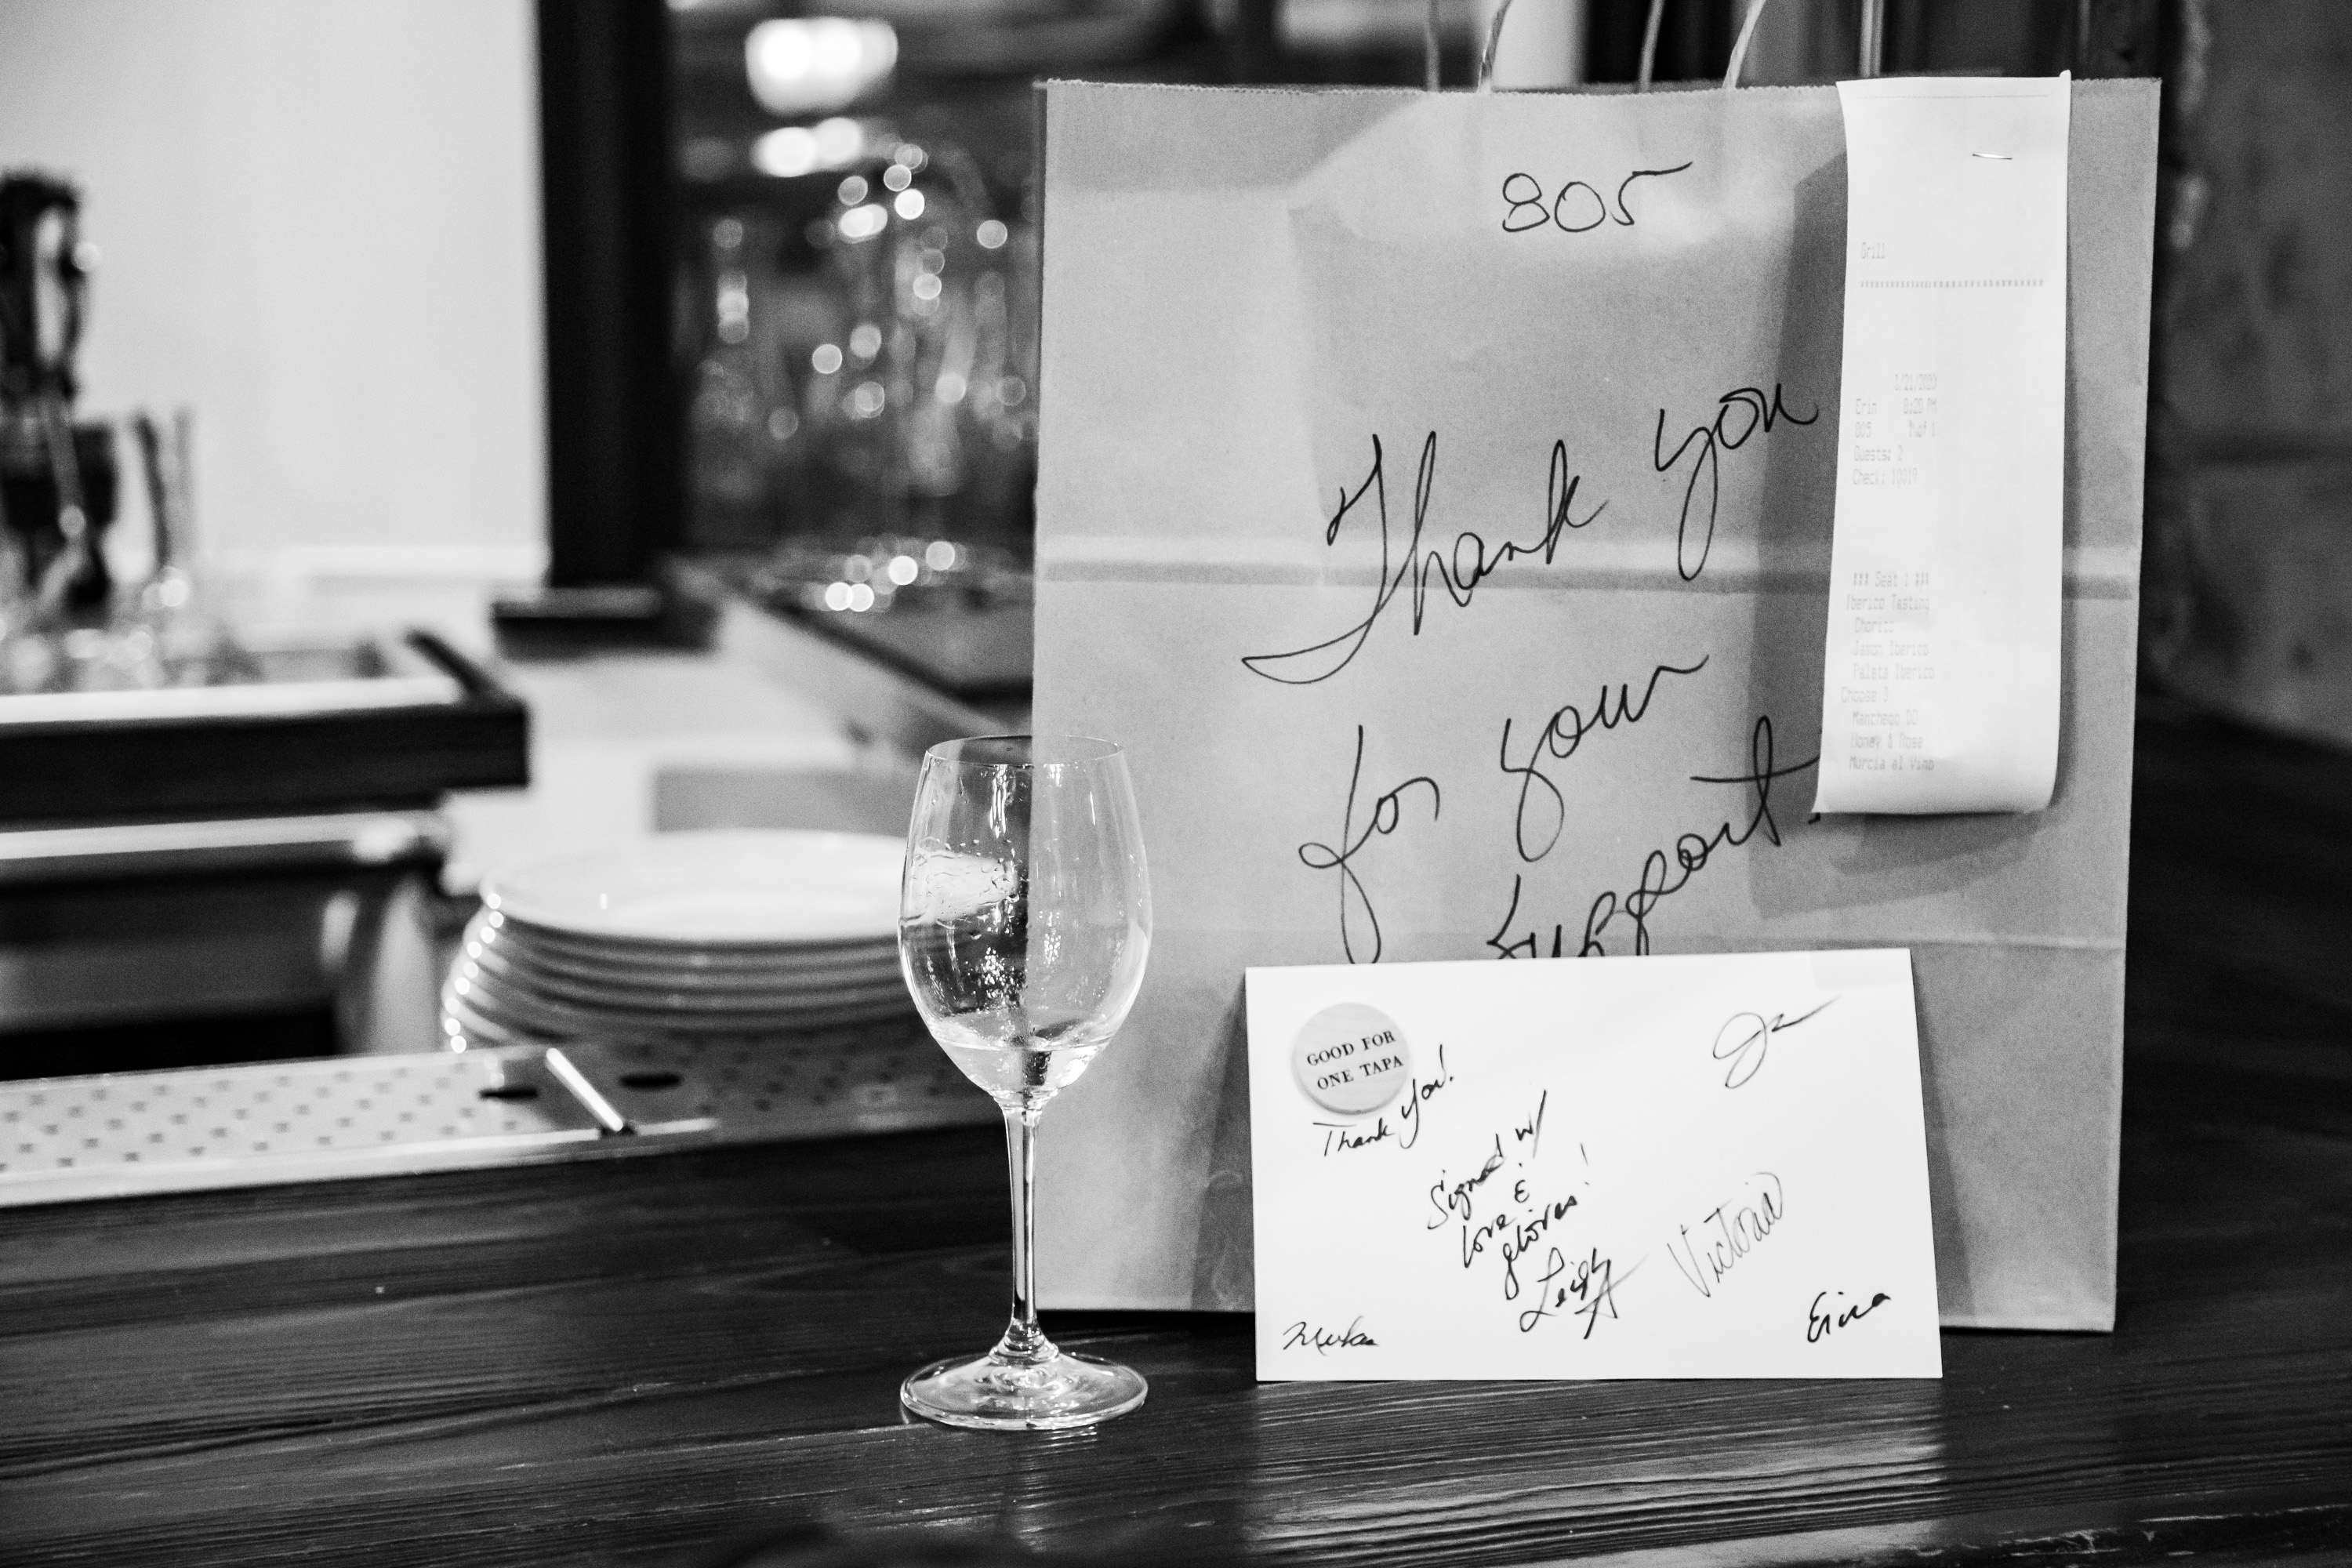 Handwritten note from Iberian Pig in Buckhead on a takeout bag amid COVID-19